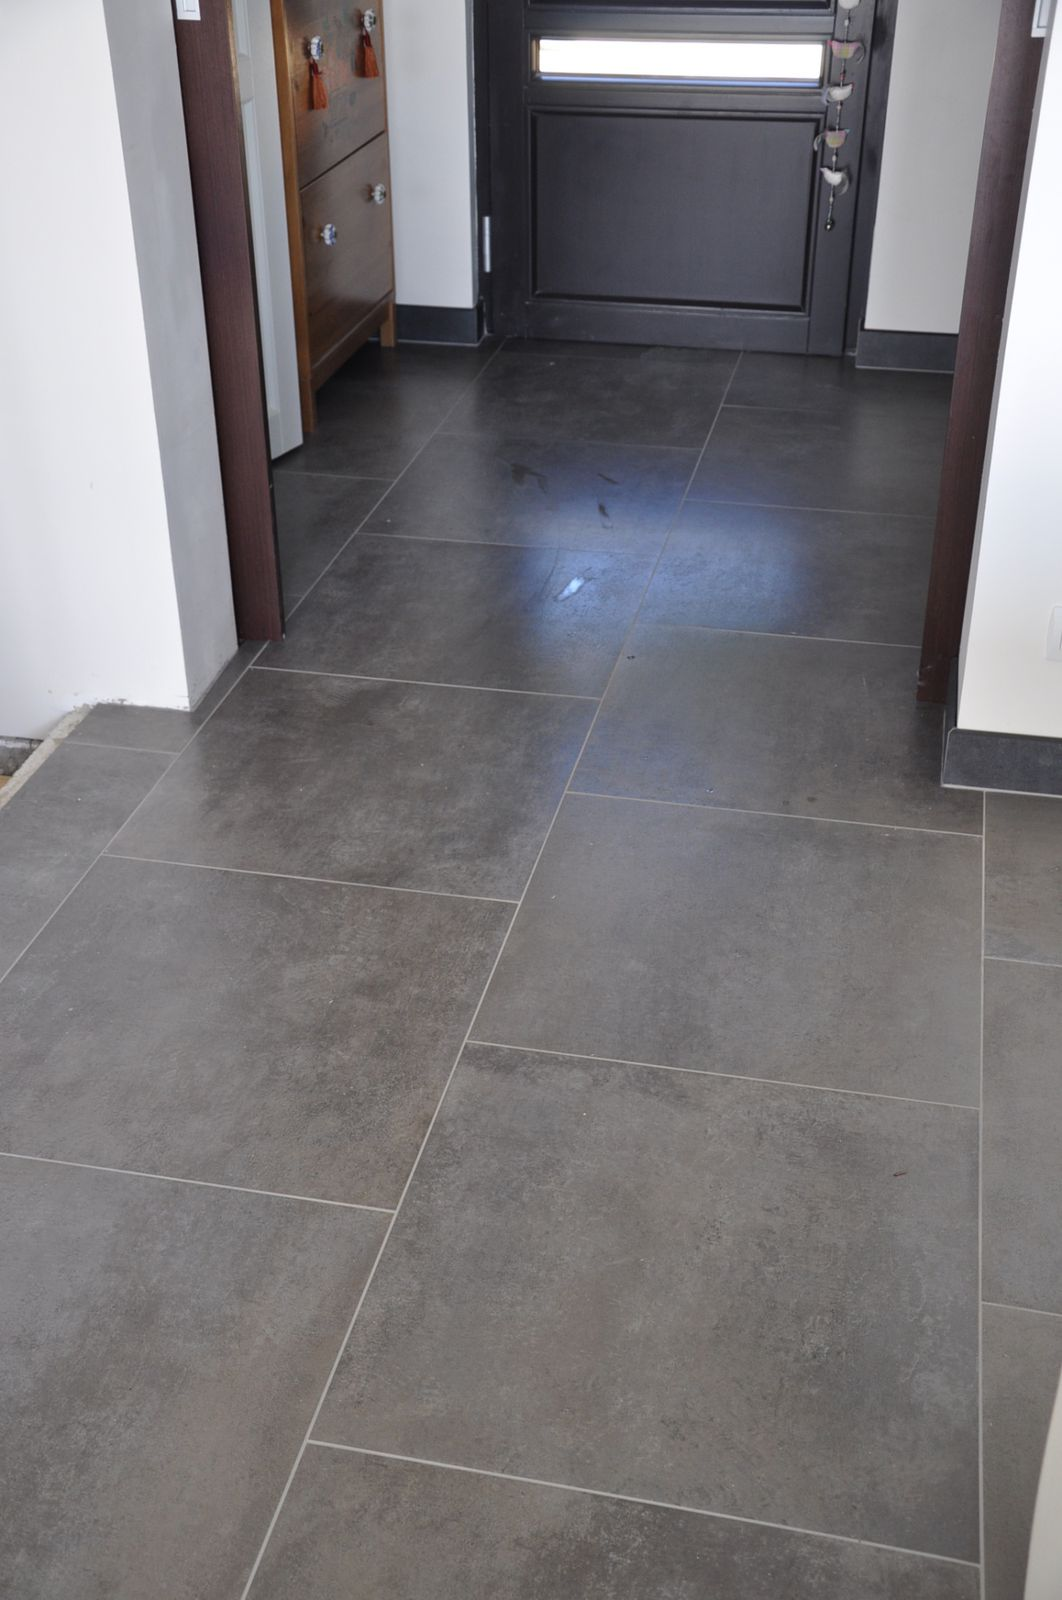 Carrelage de sol le blog de soso construction maison bois for Carrelage 60x60 gris clair